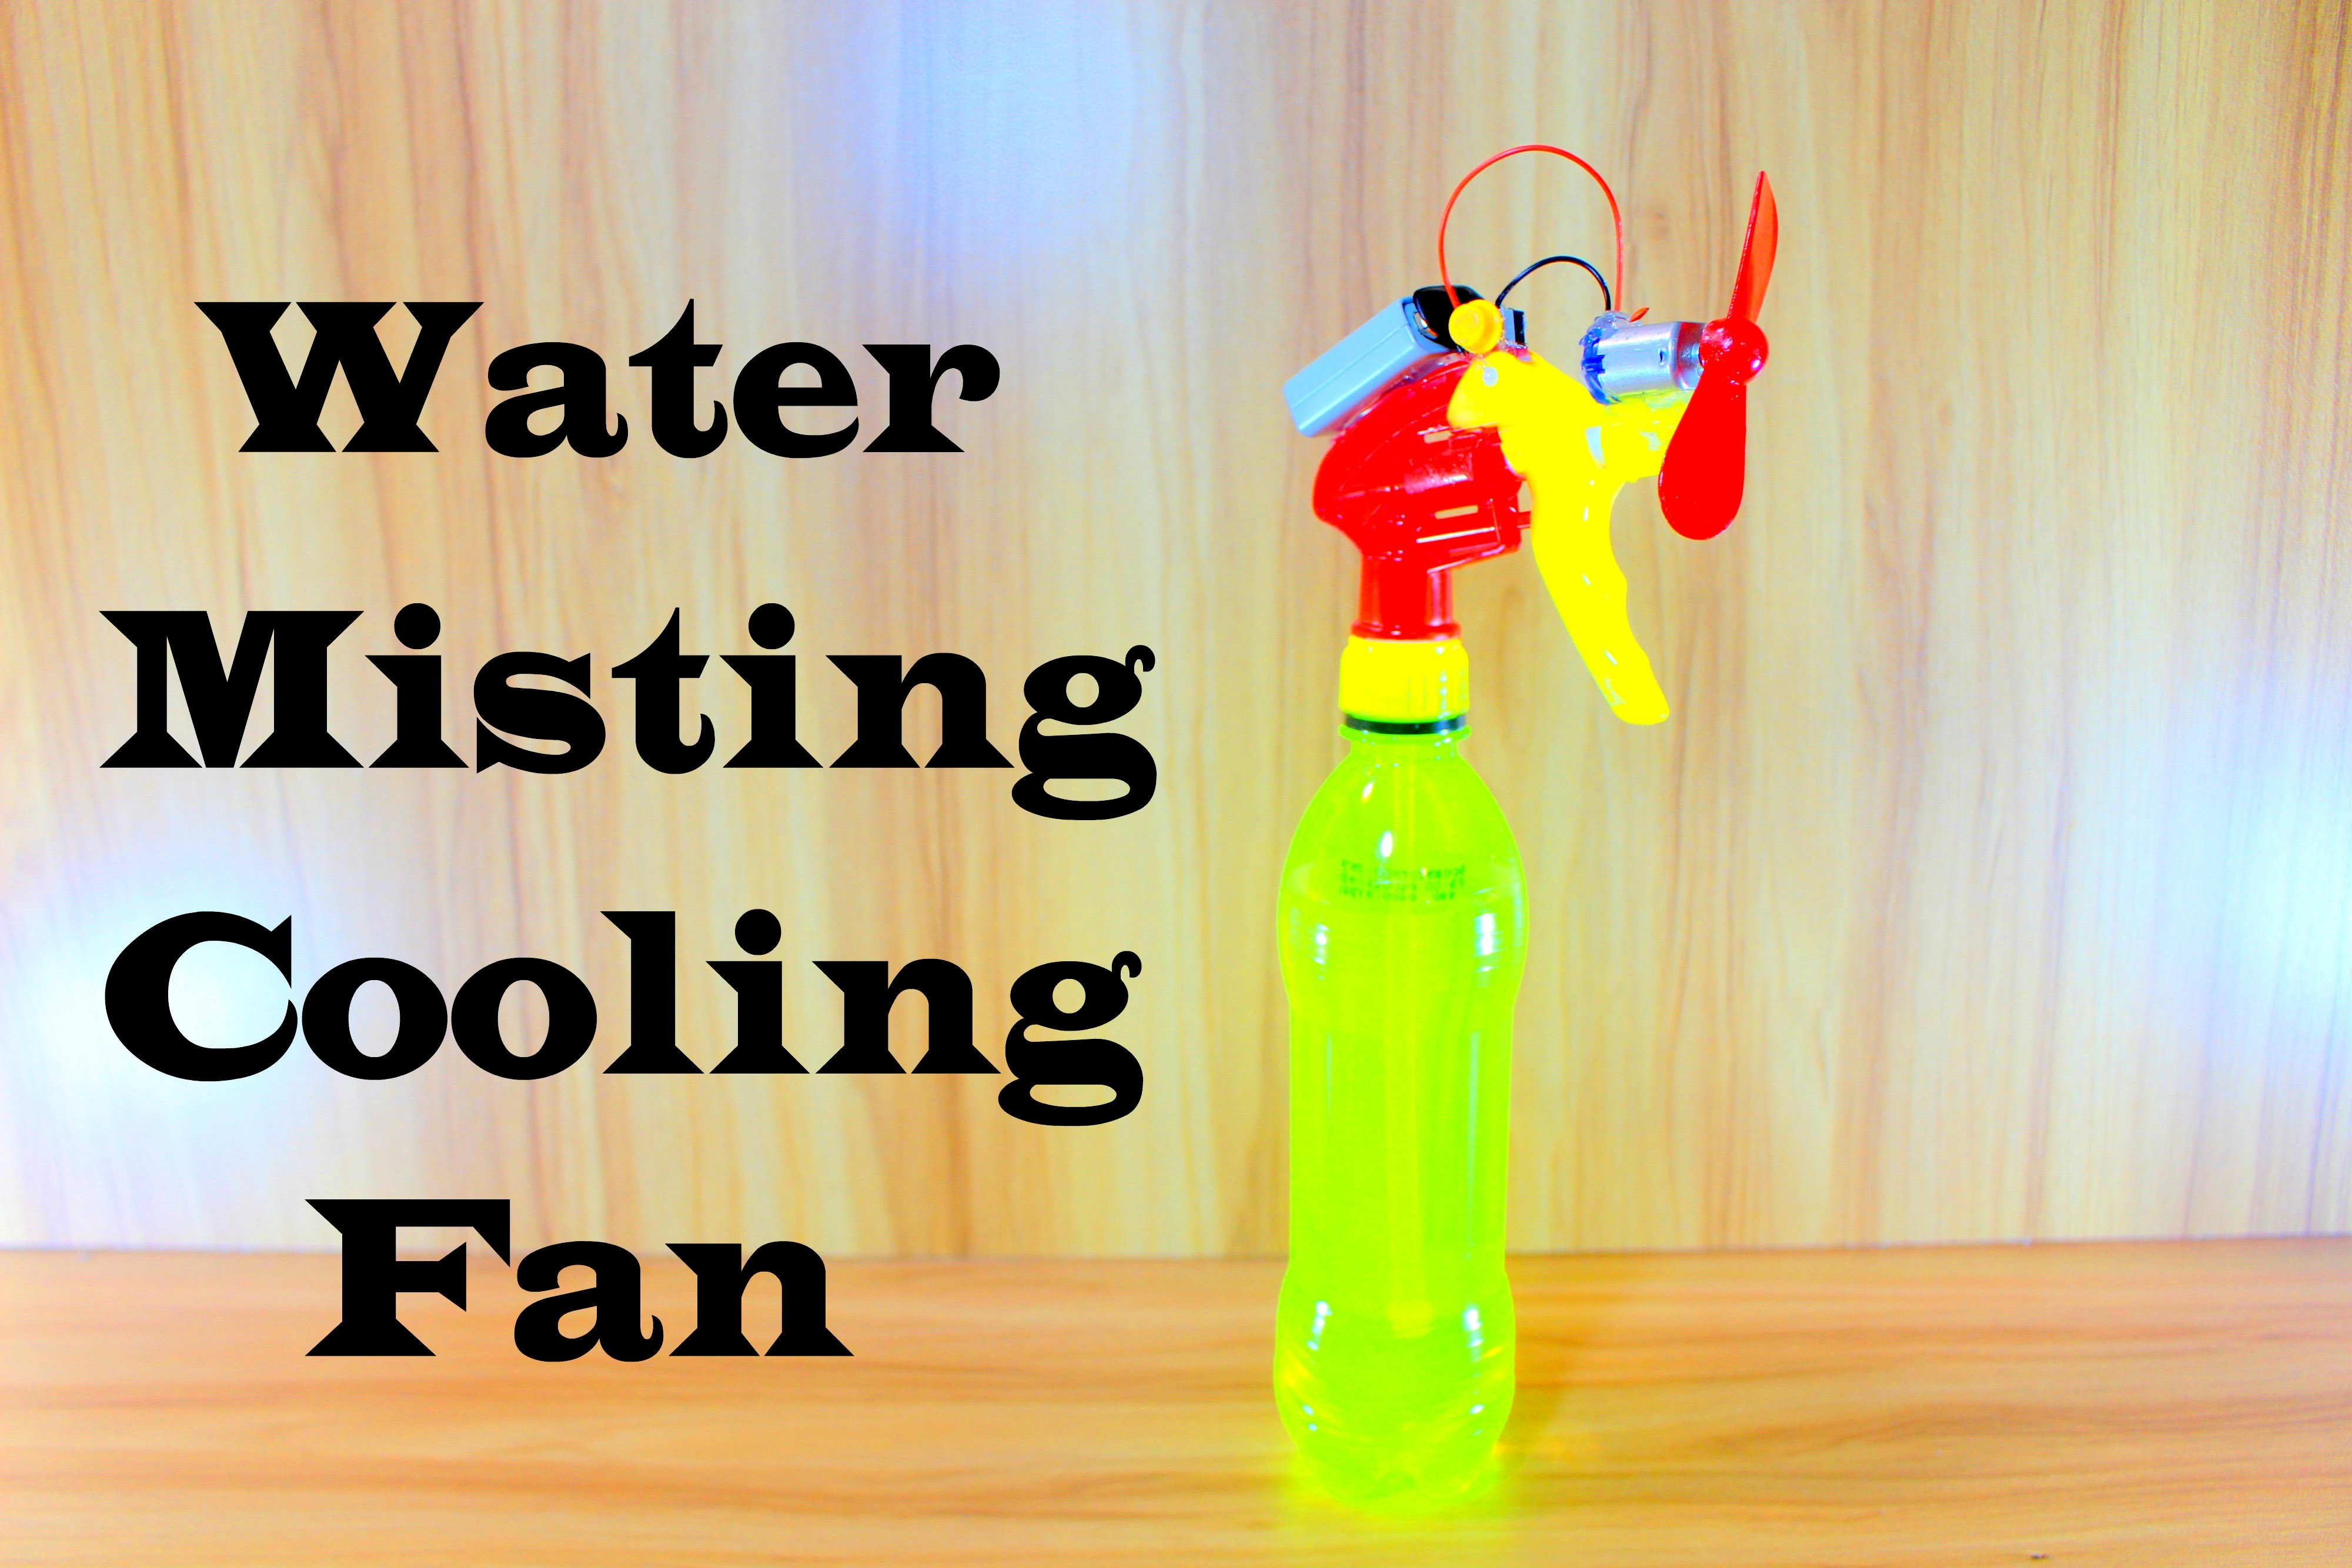 How to Make water Spray cooling Fan | How to Make Misting Fan